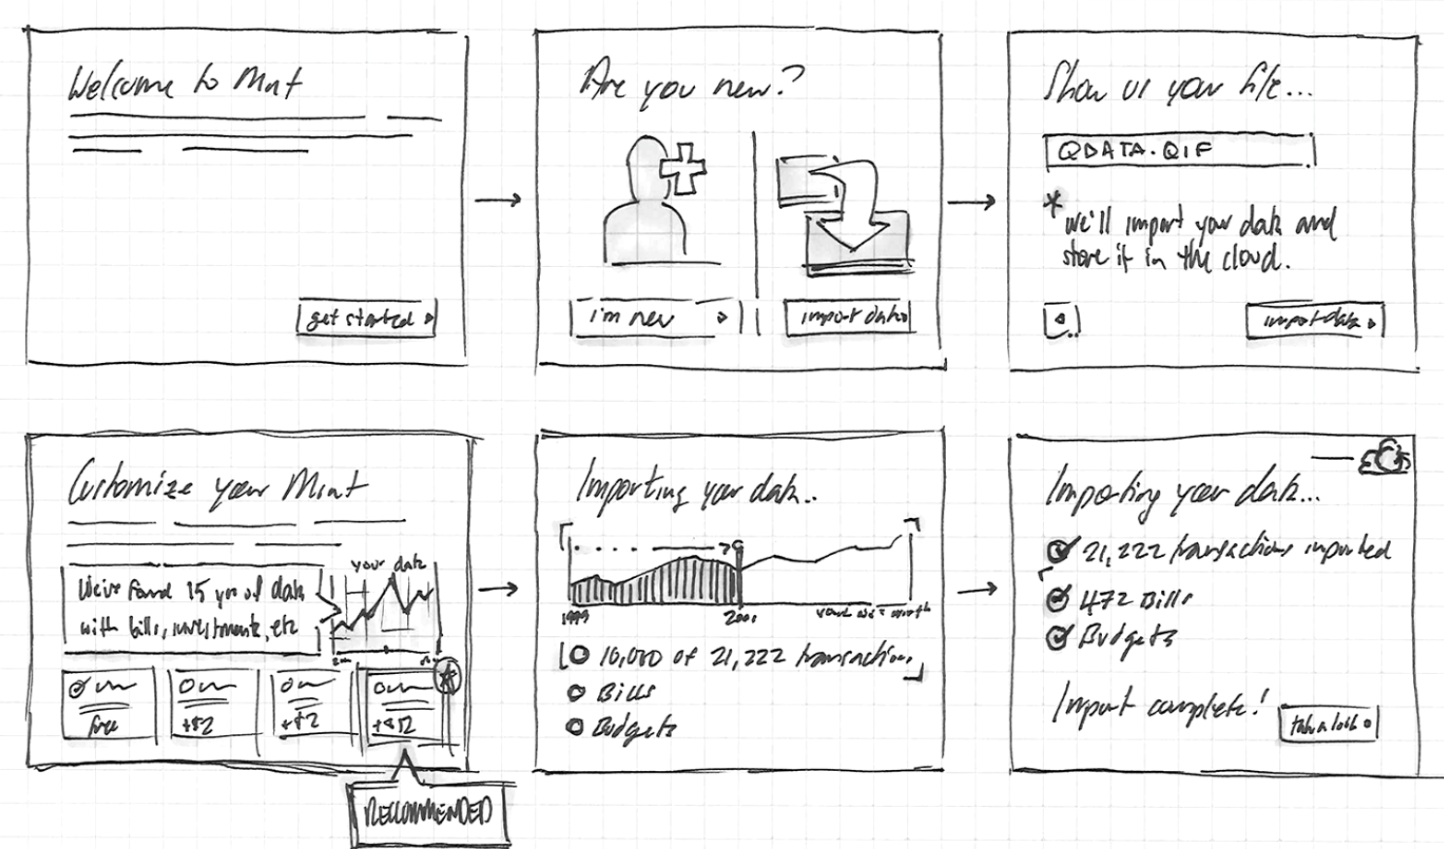 Source: UX sketches by  Dan Defenbaugh